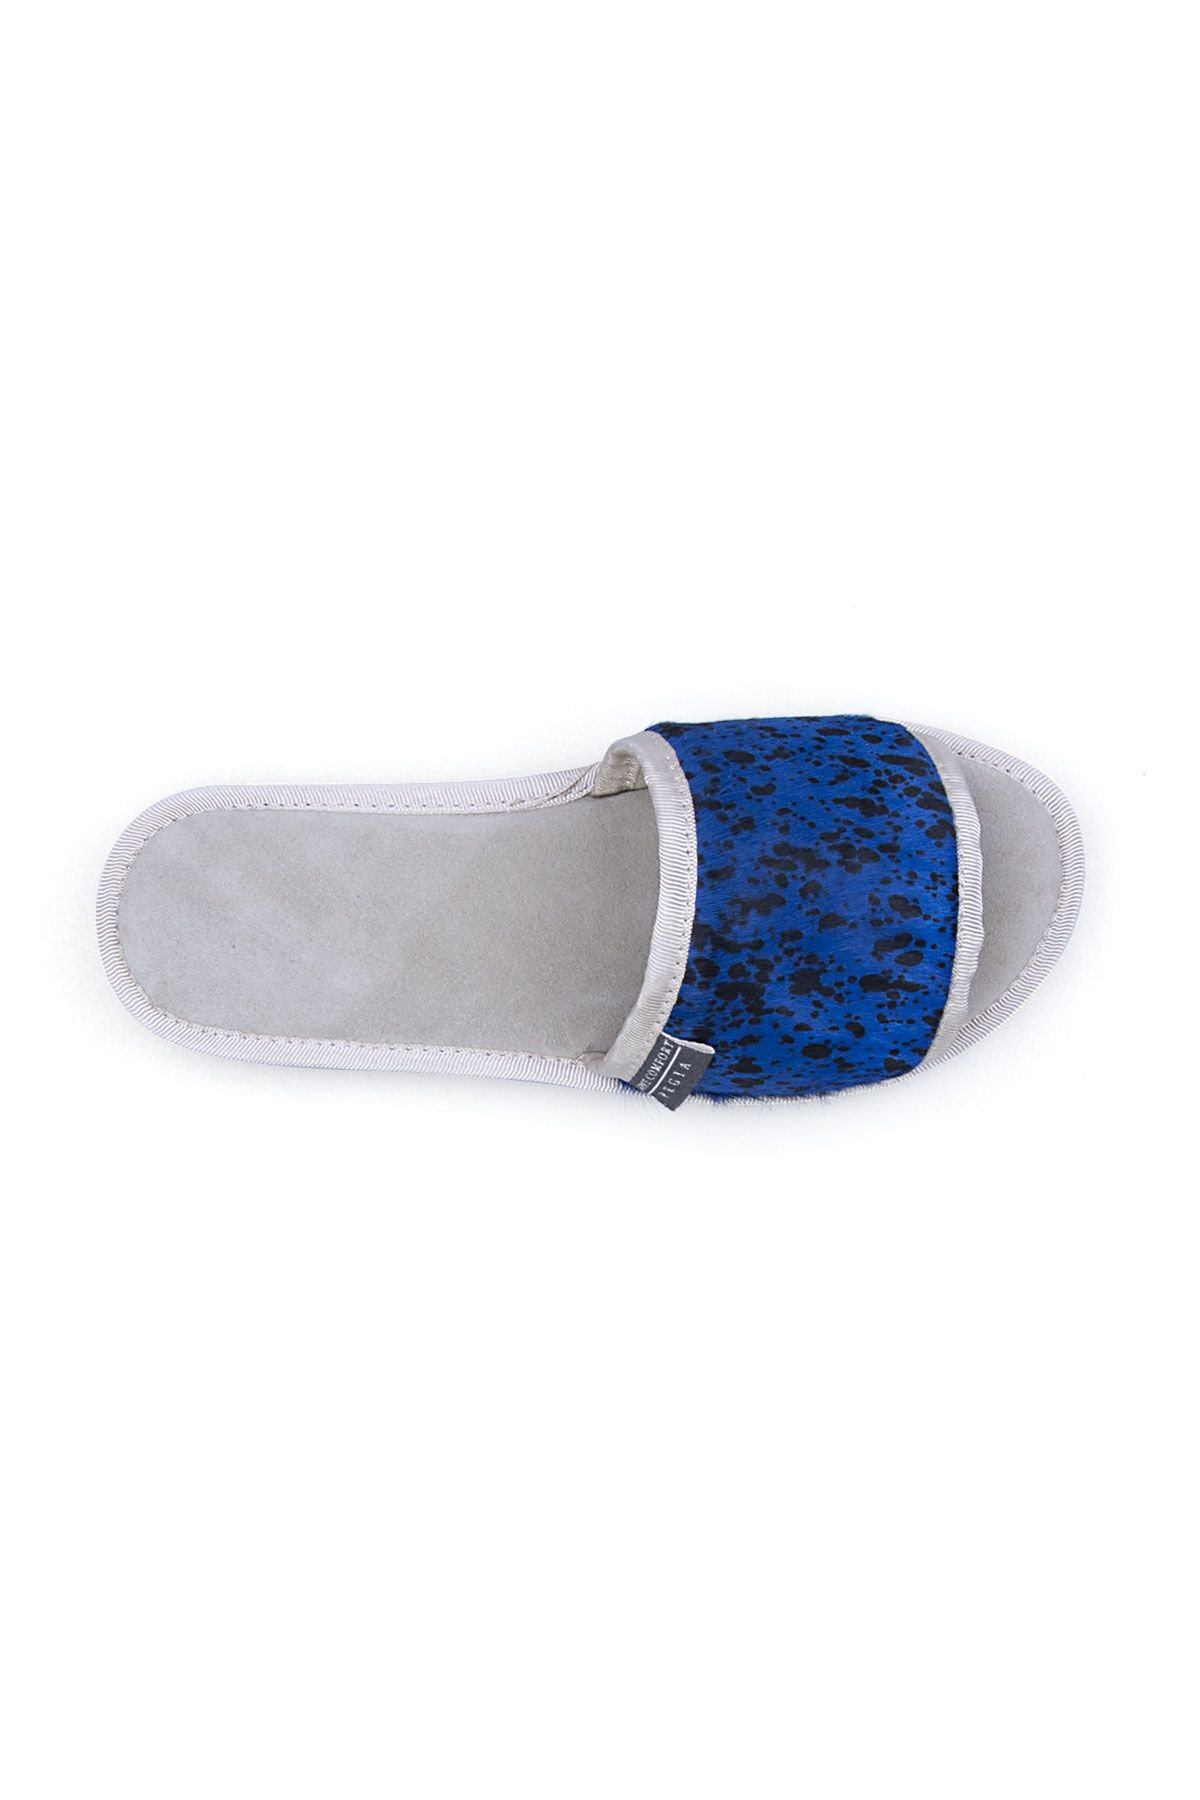 Pegia Genuine Leather Women's House Slippers 191403 Blue